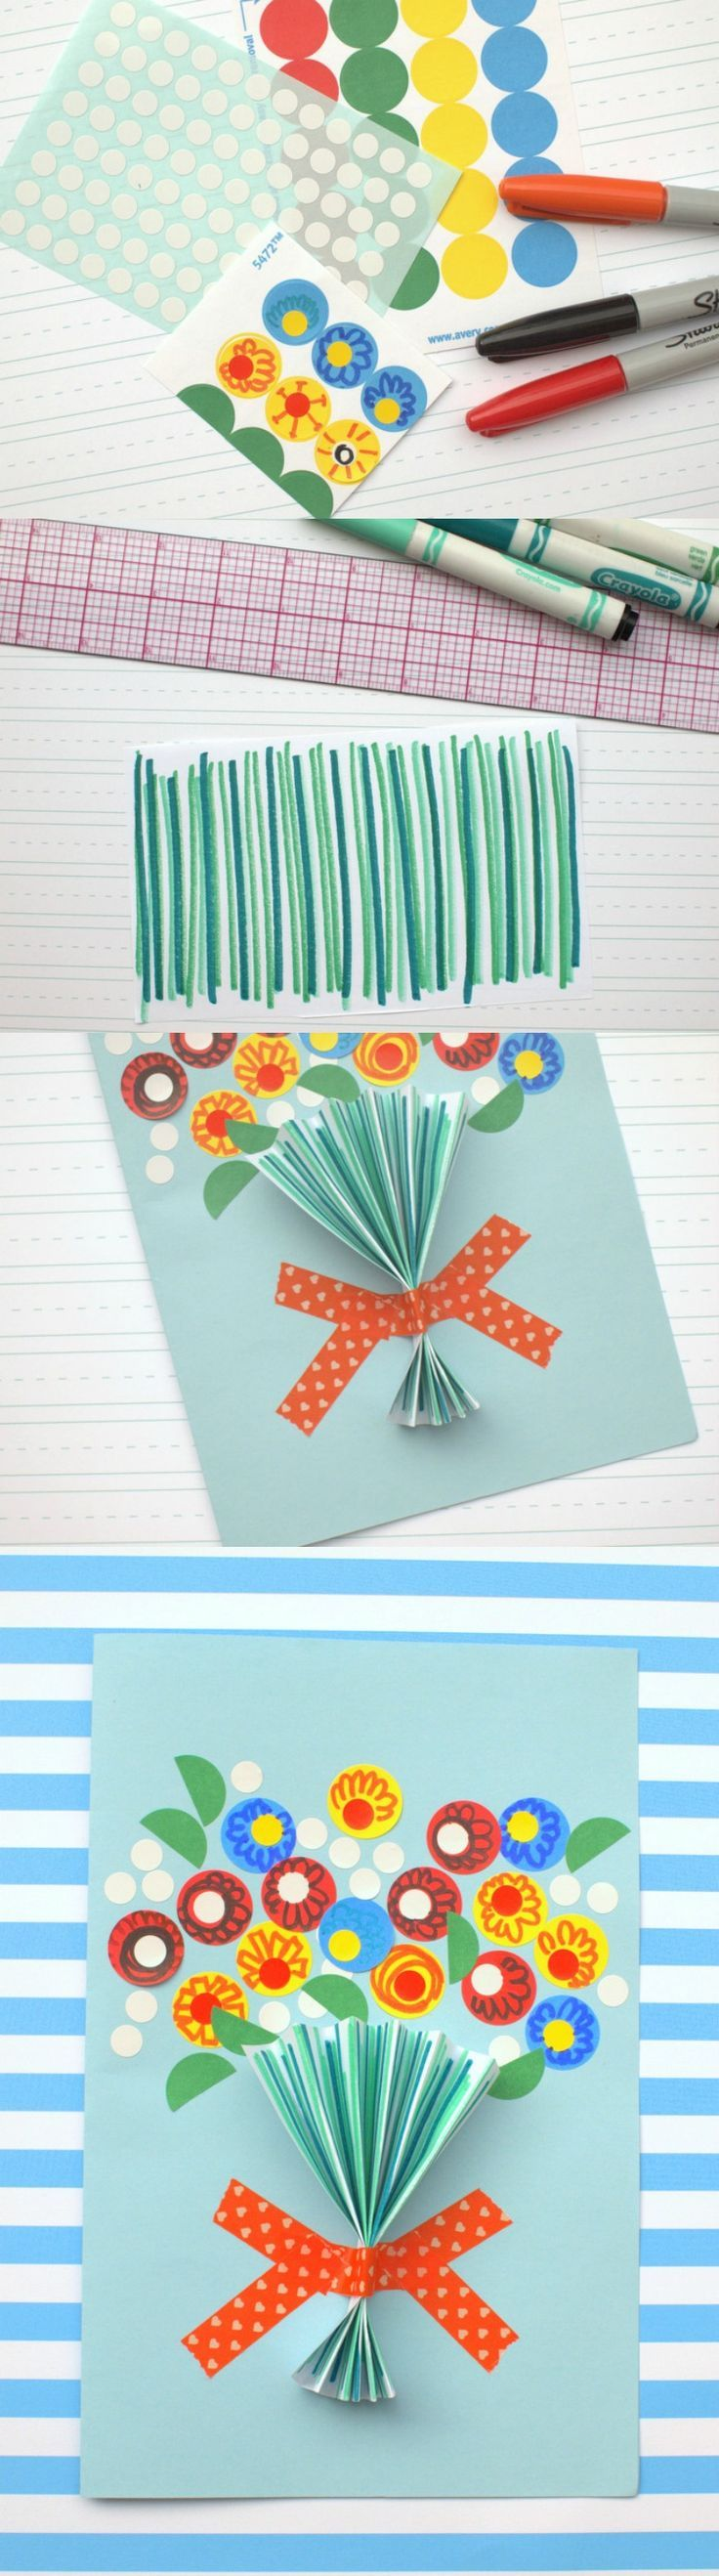 Are you looking for a handmade Mother's Day card idea that both littles and adults will have fun making? This is that card - so simple and darling!